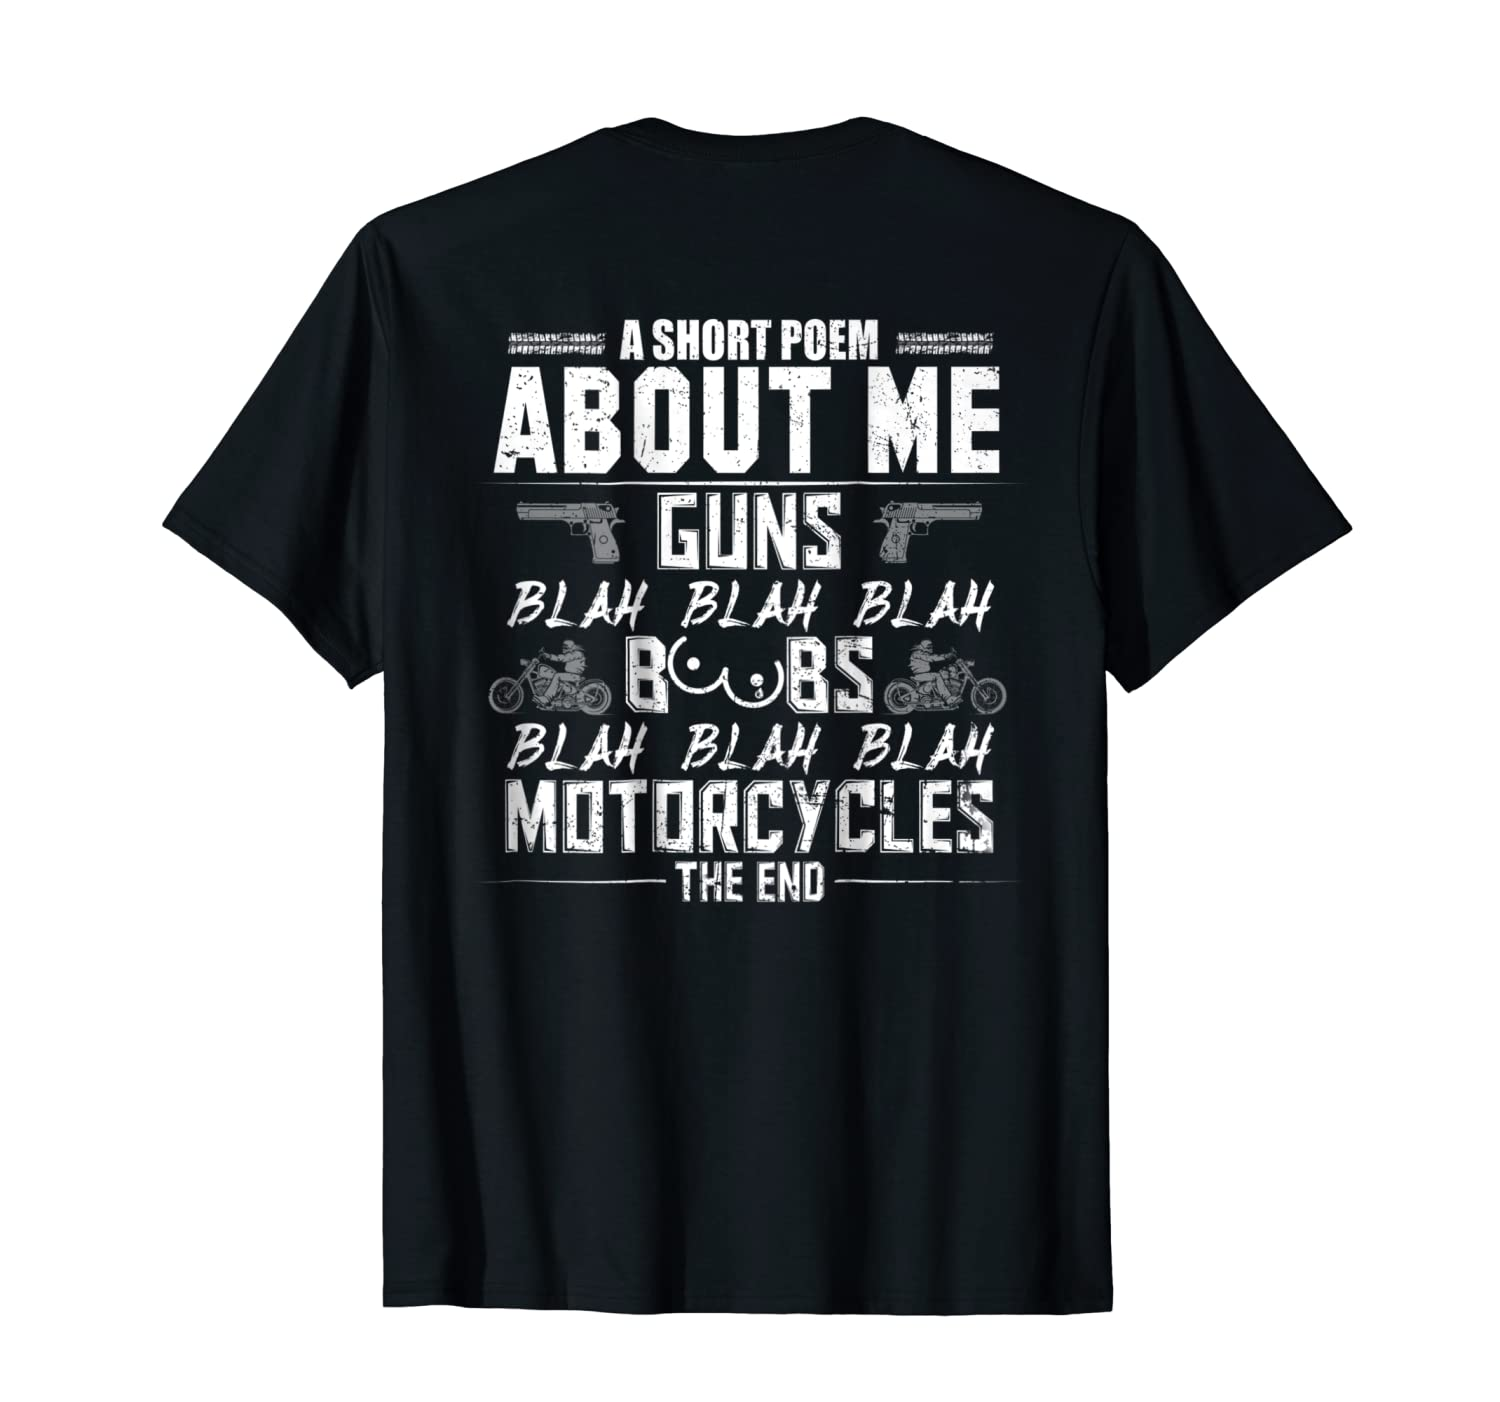 A Short Poem About Me Gun Motorcycles The End Shirts